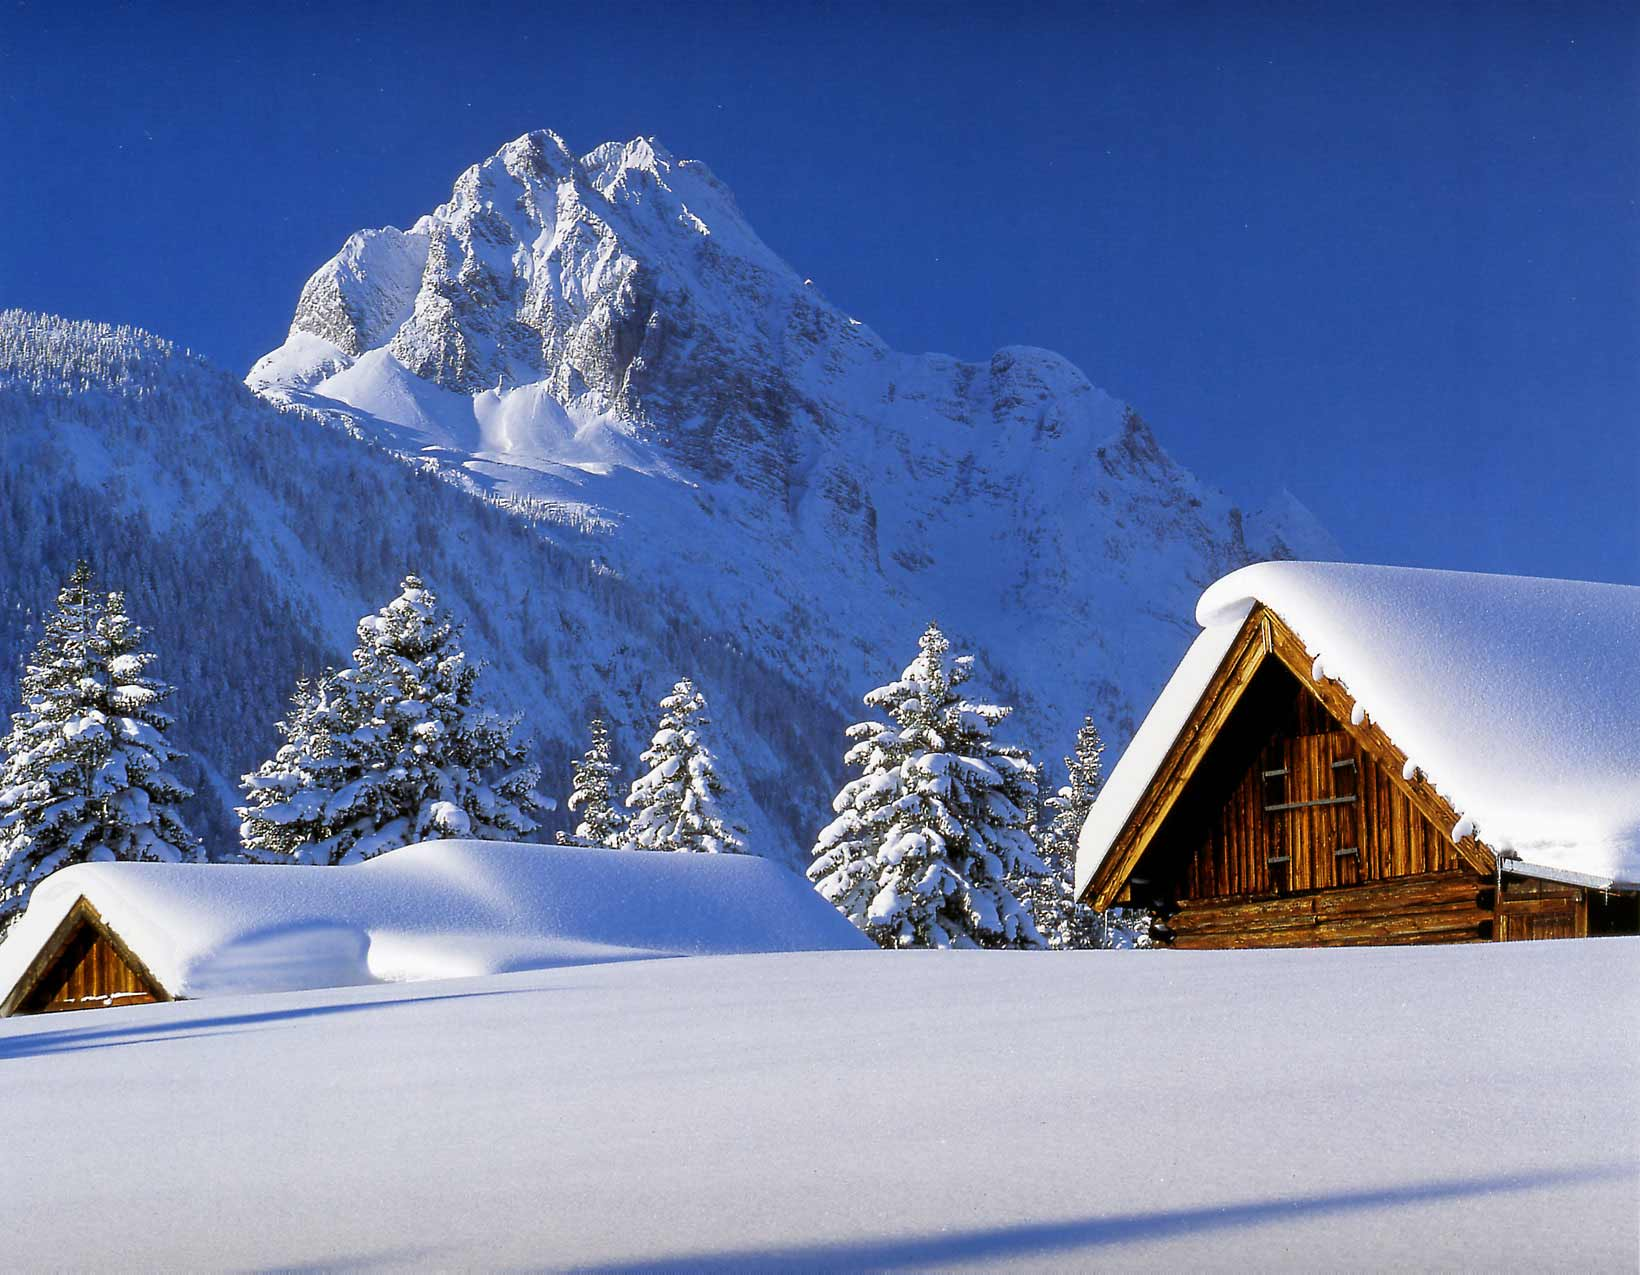 Snowing Images Snow Hd Wallpaper And Background Photos